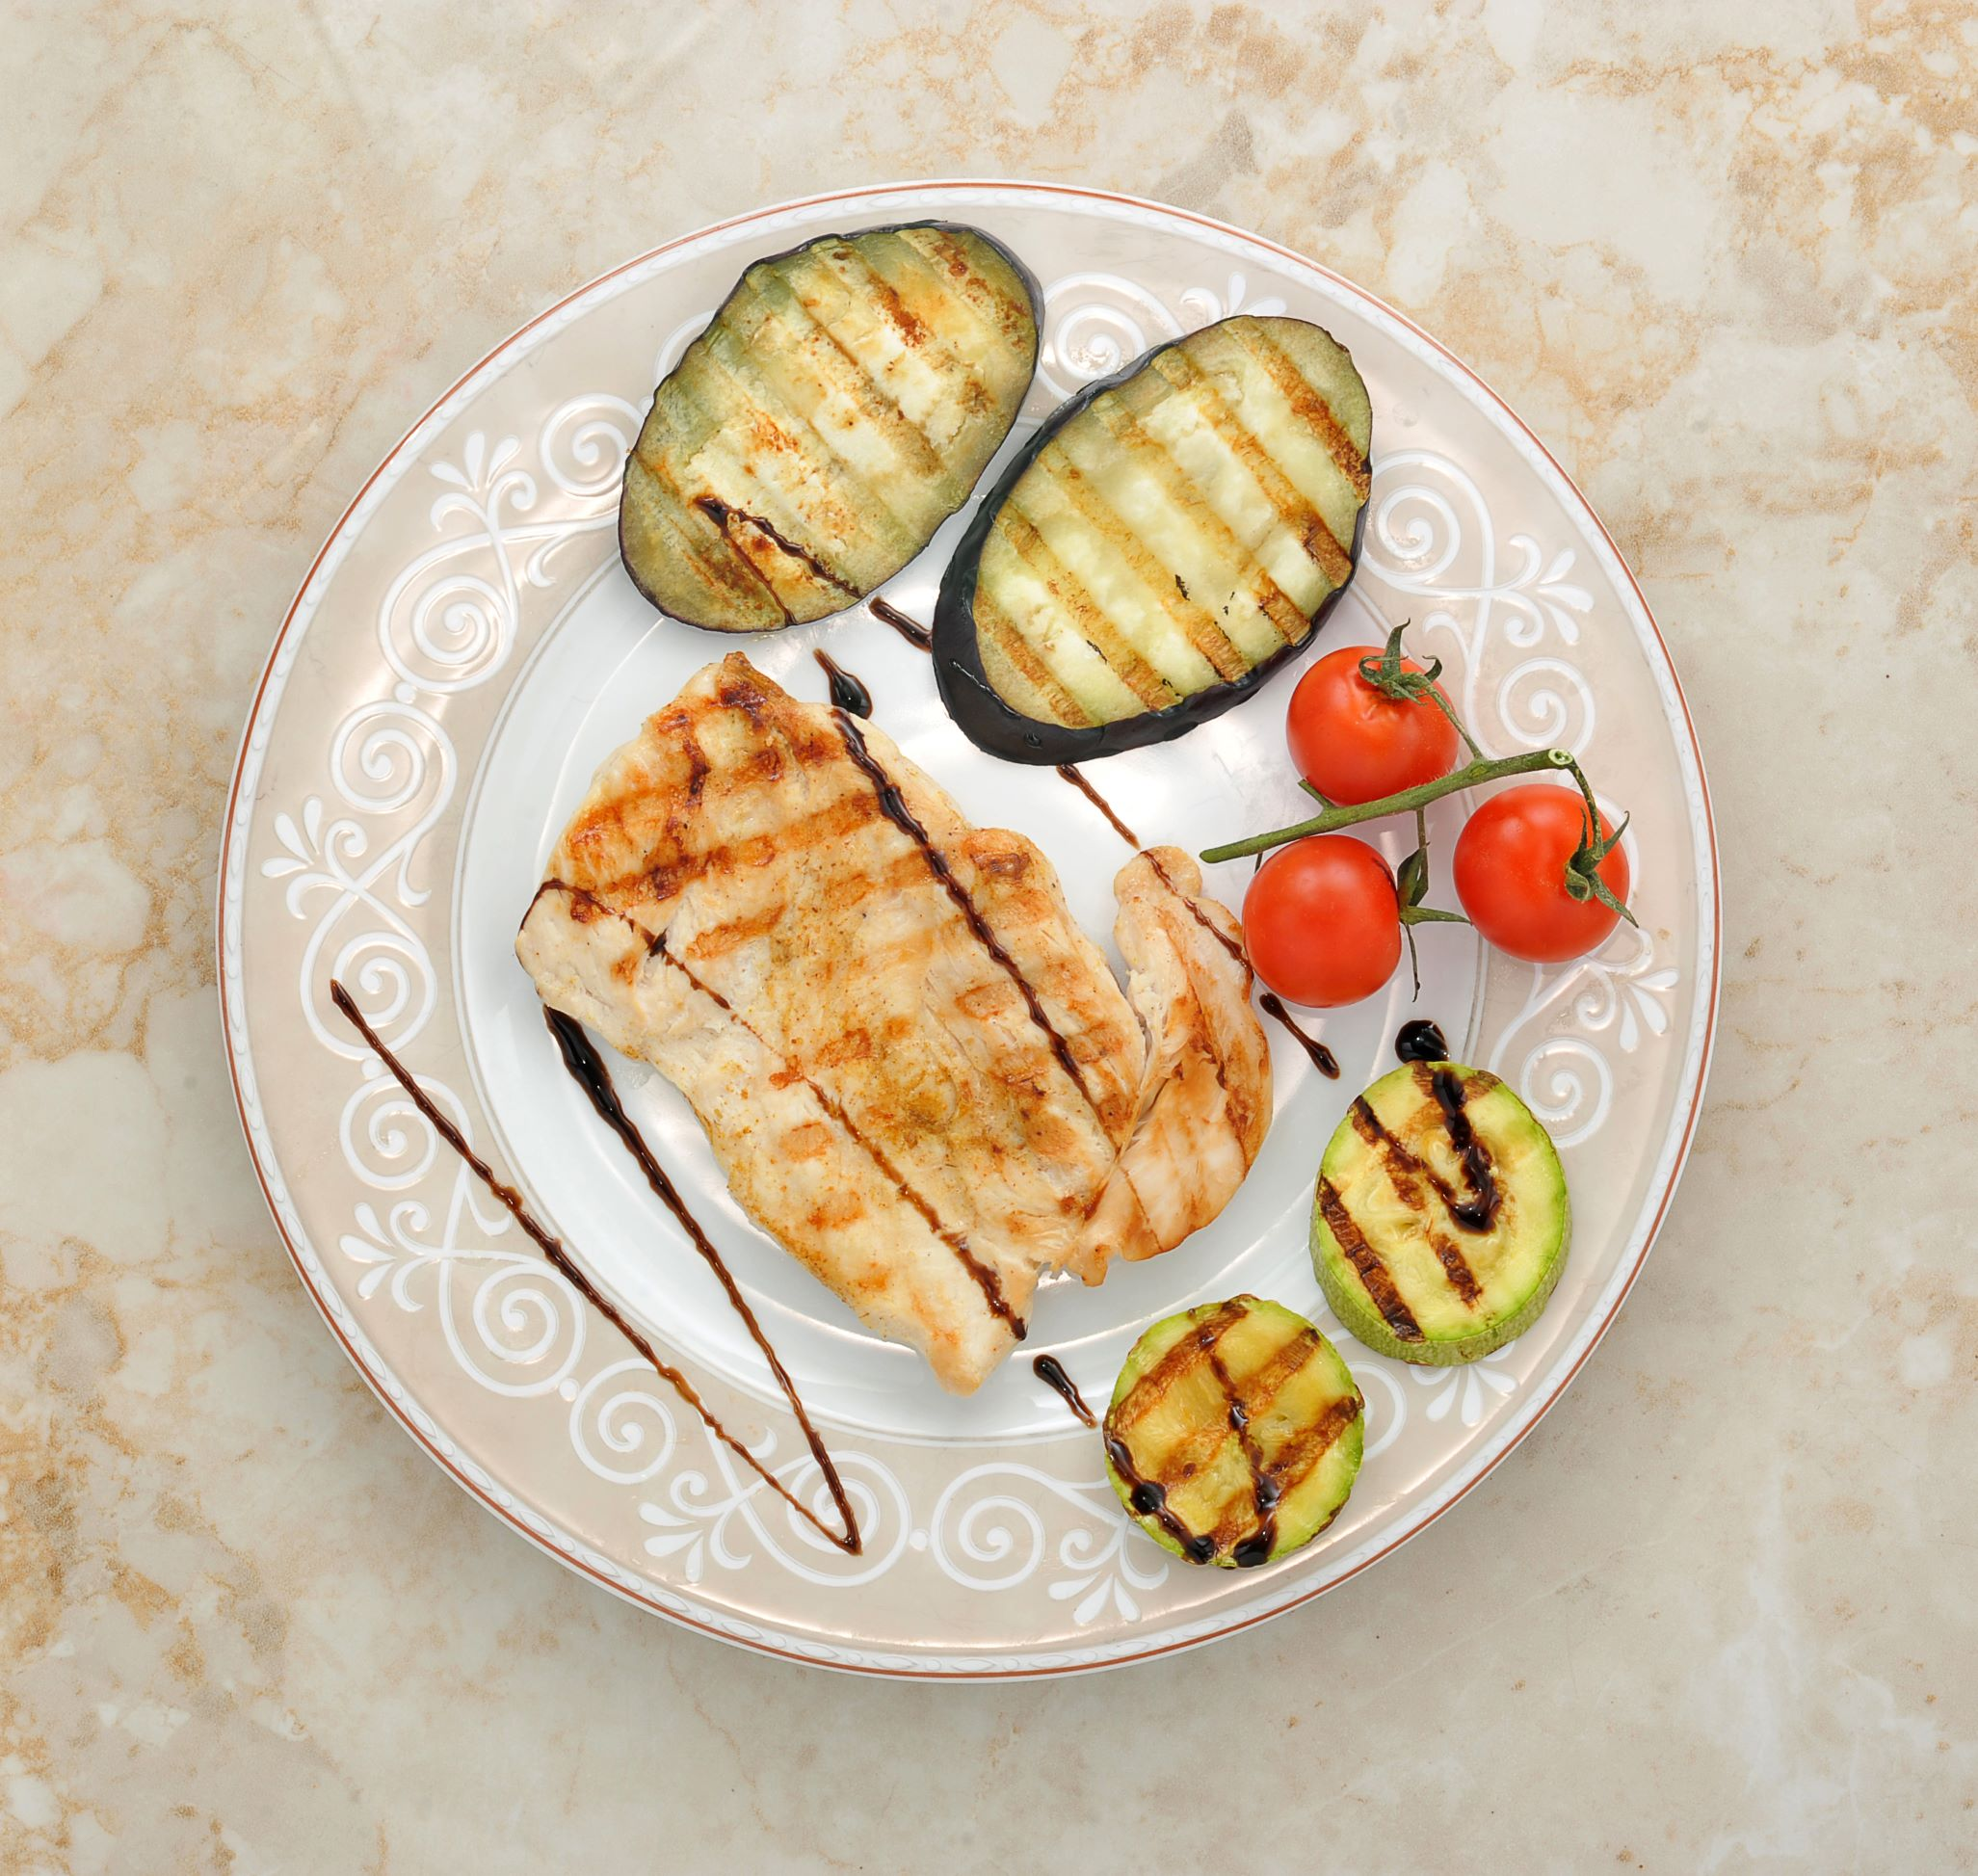 Picture of a plate with grilled chicken and grilled vegetables